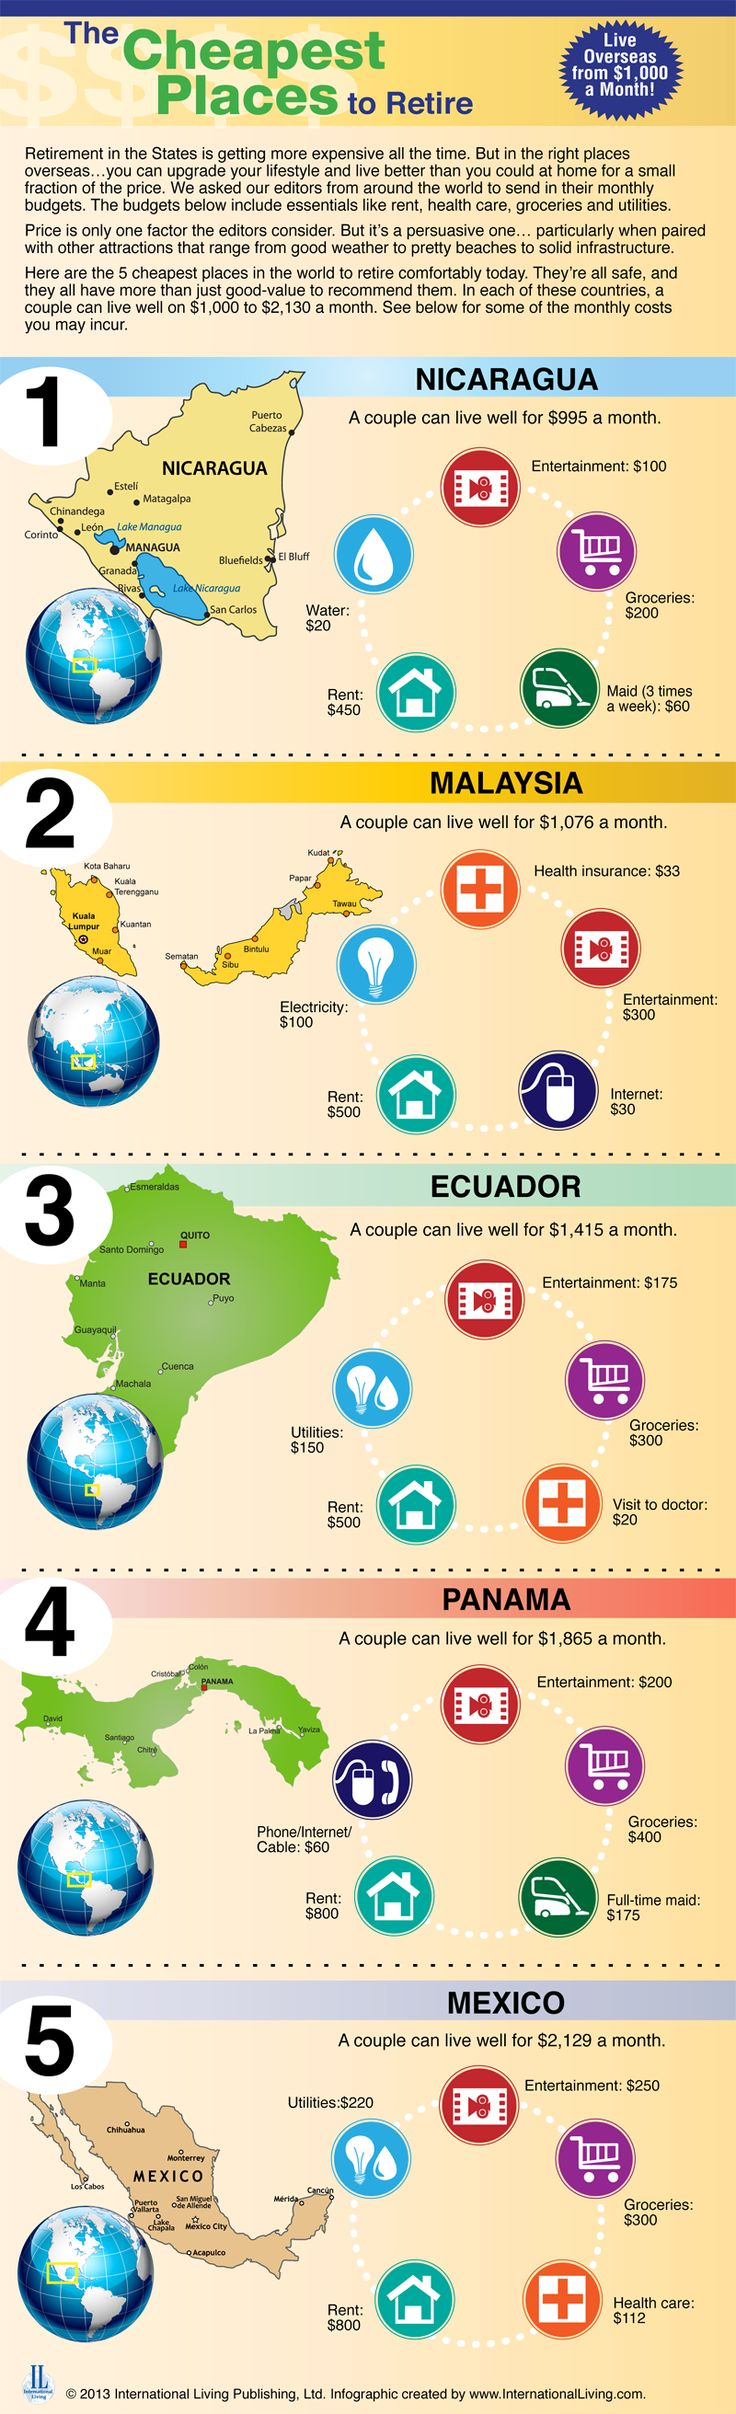 Latin America - cost of living in some countries - the suggestion is to retire There.